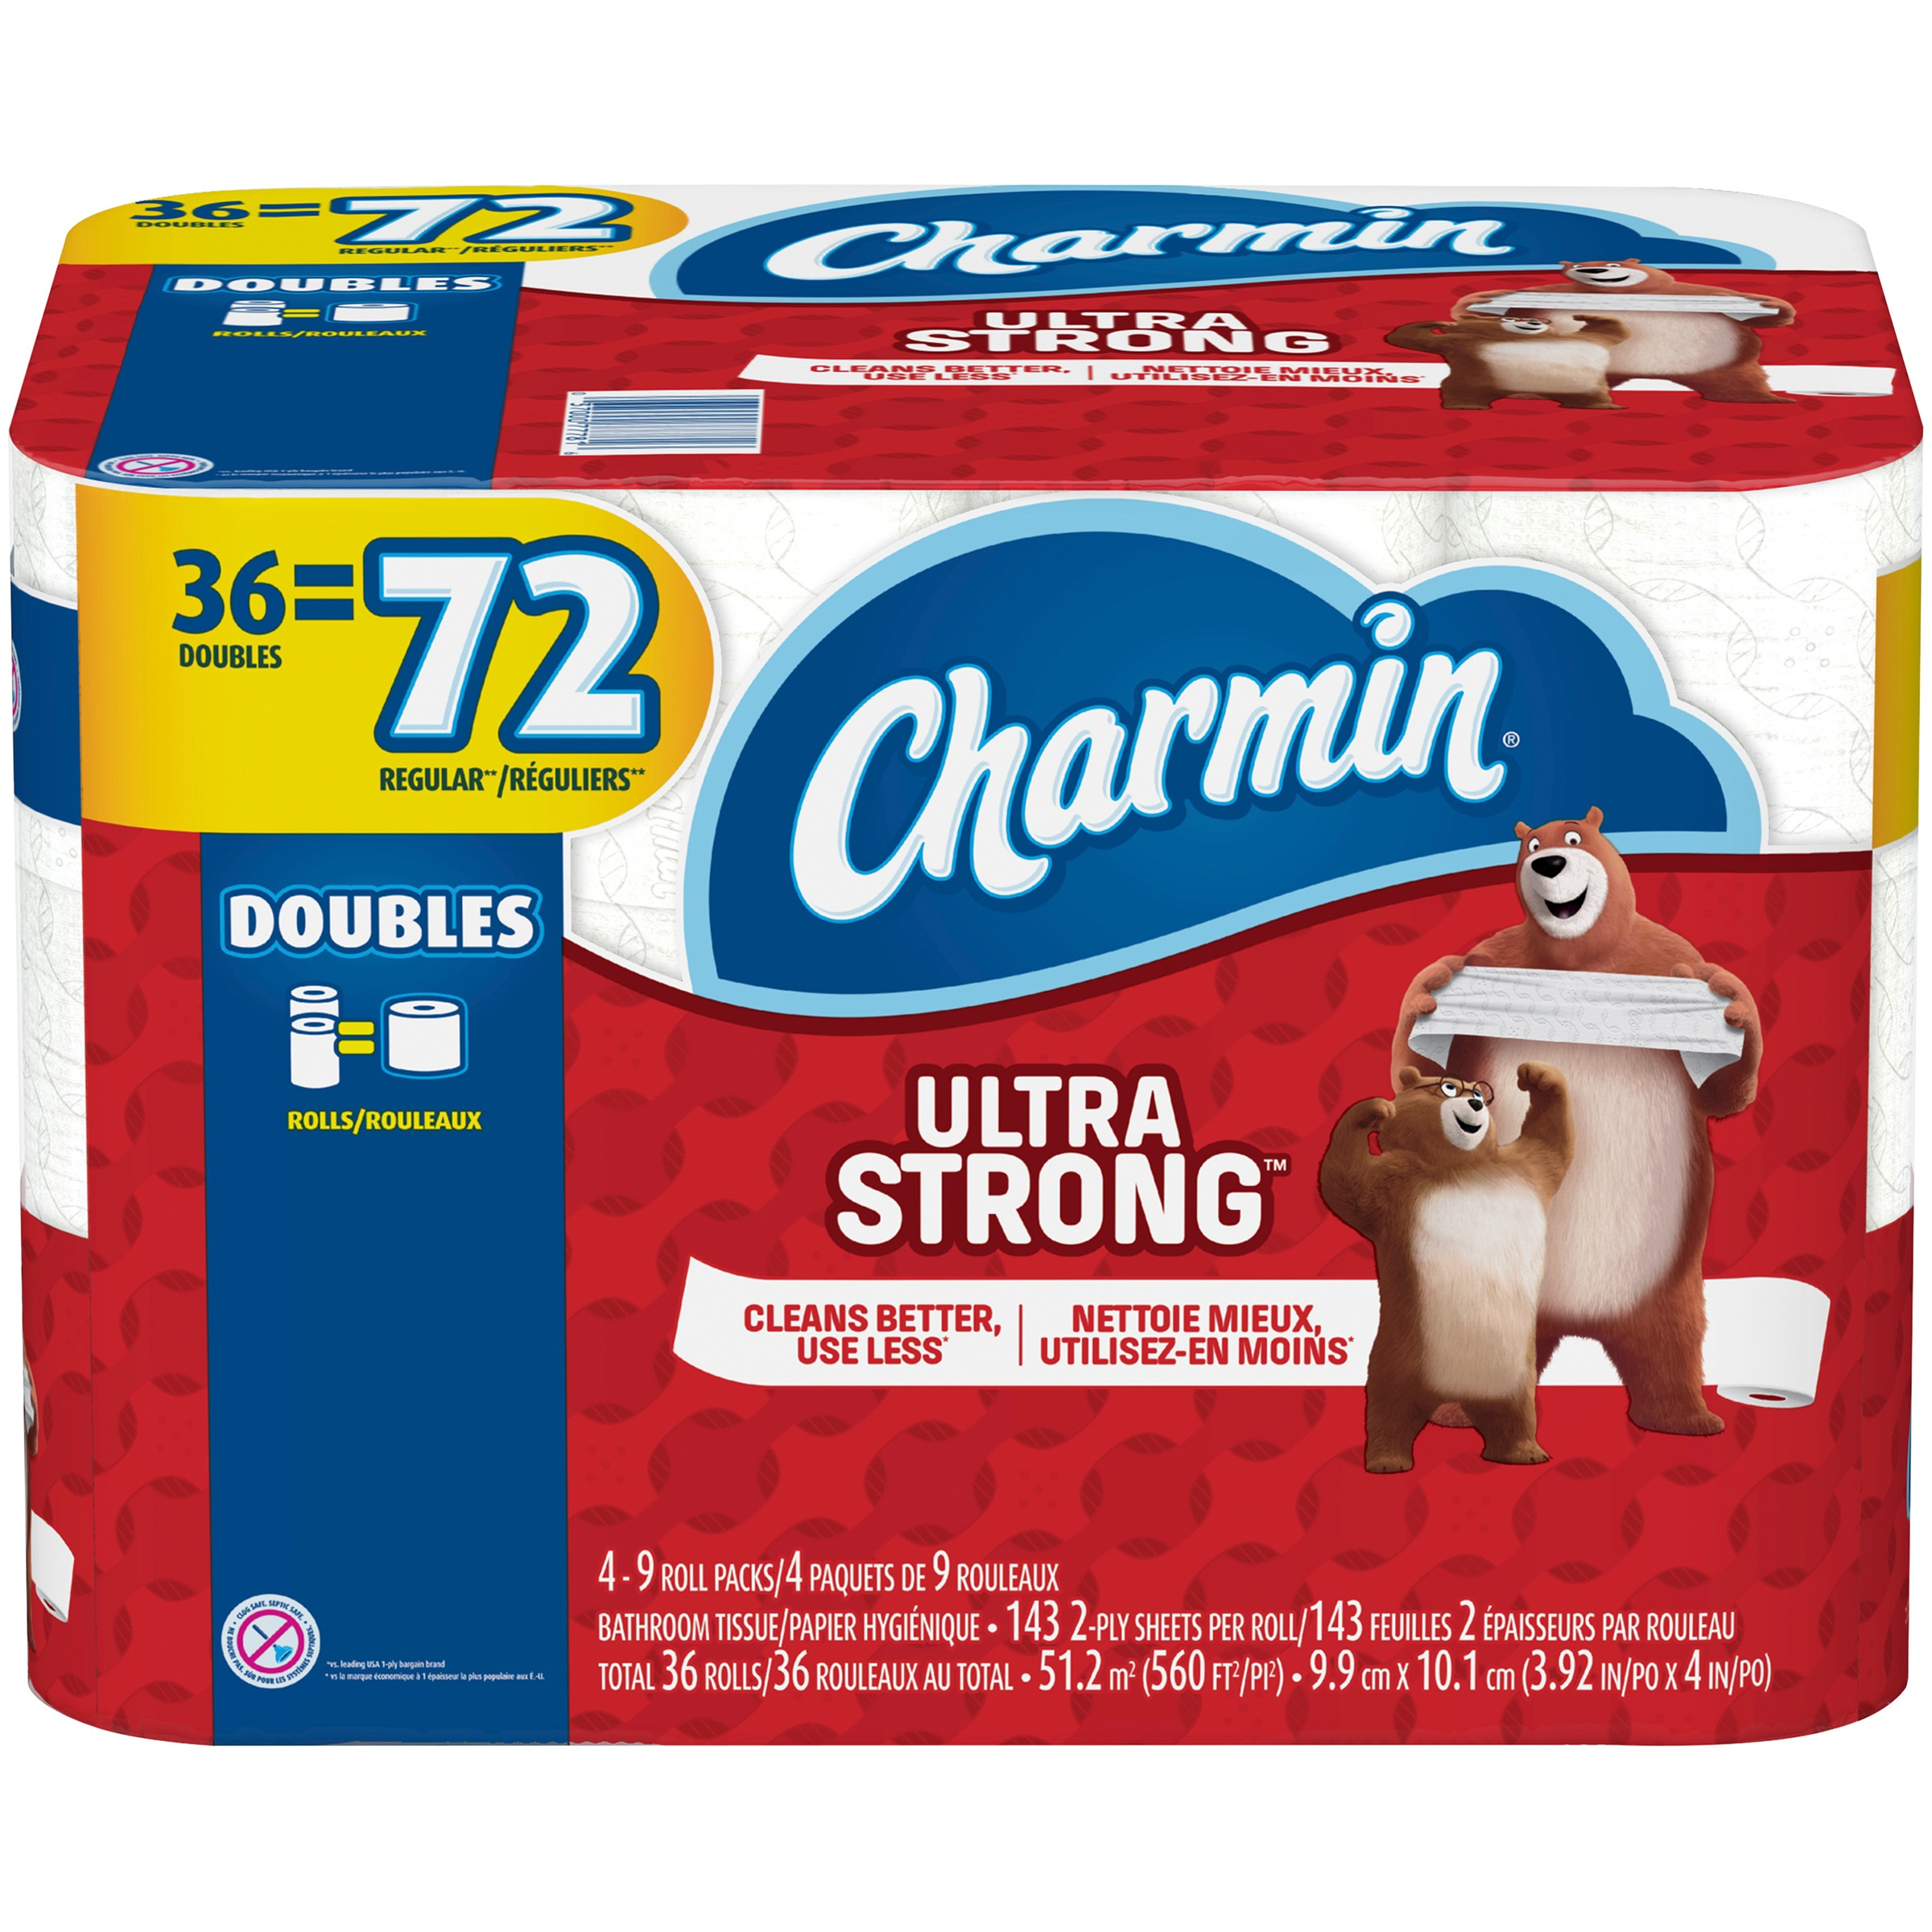 Charmin Ultra Strong Toilet Paper 36 Double Rolls